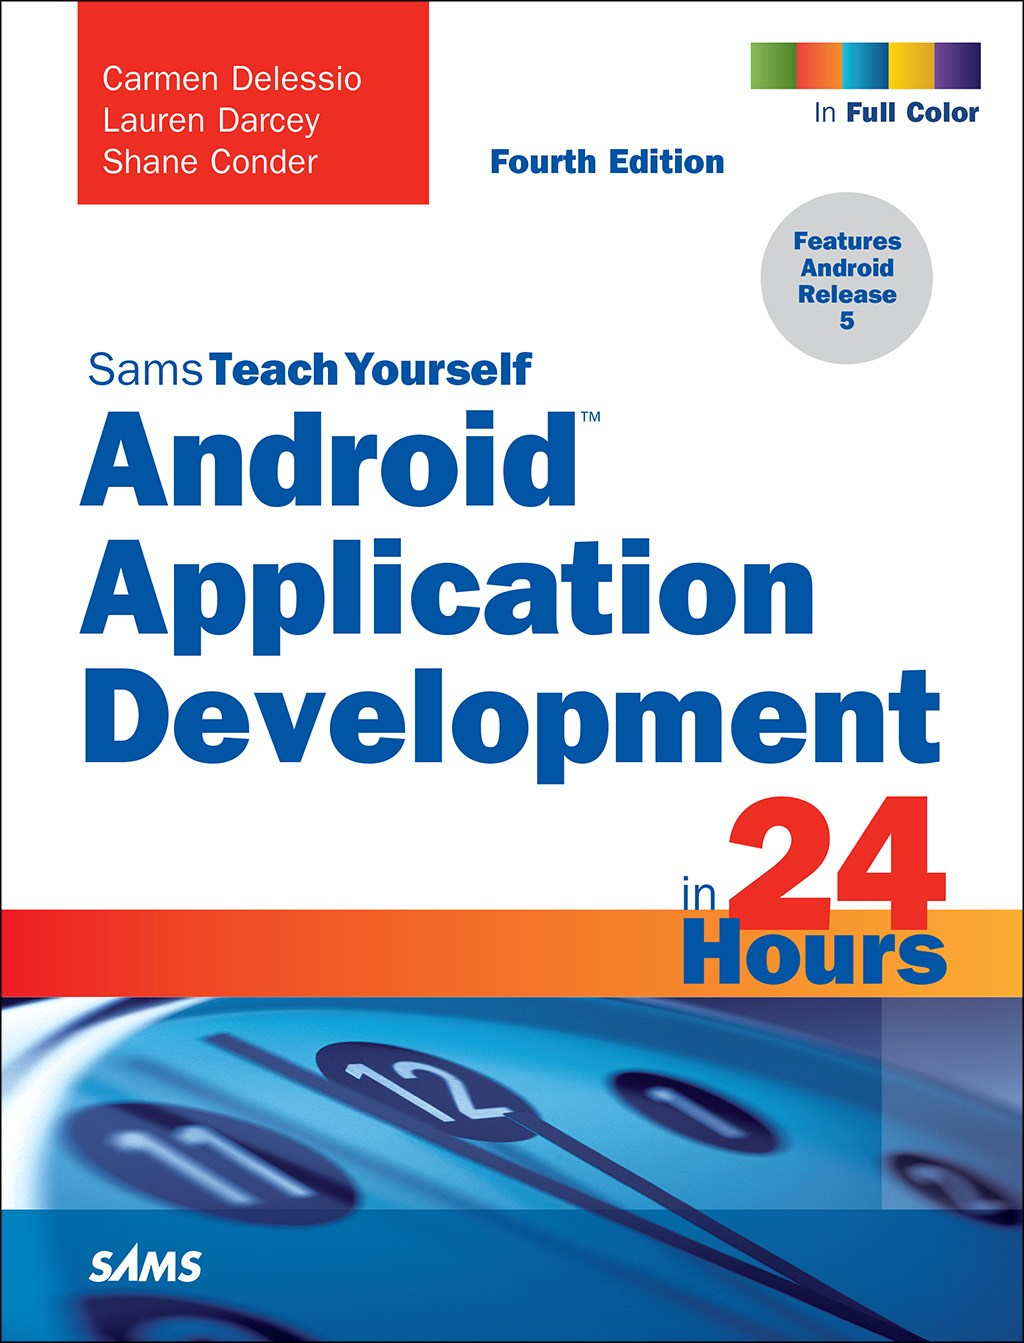 Android Application Development in 24 Hours, Sams Teach Yourself, 4th Edition